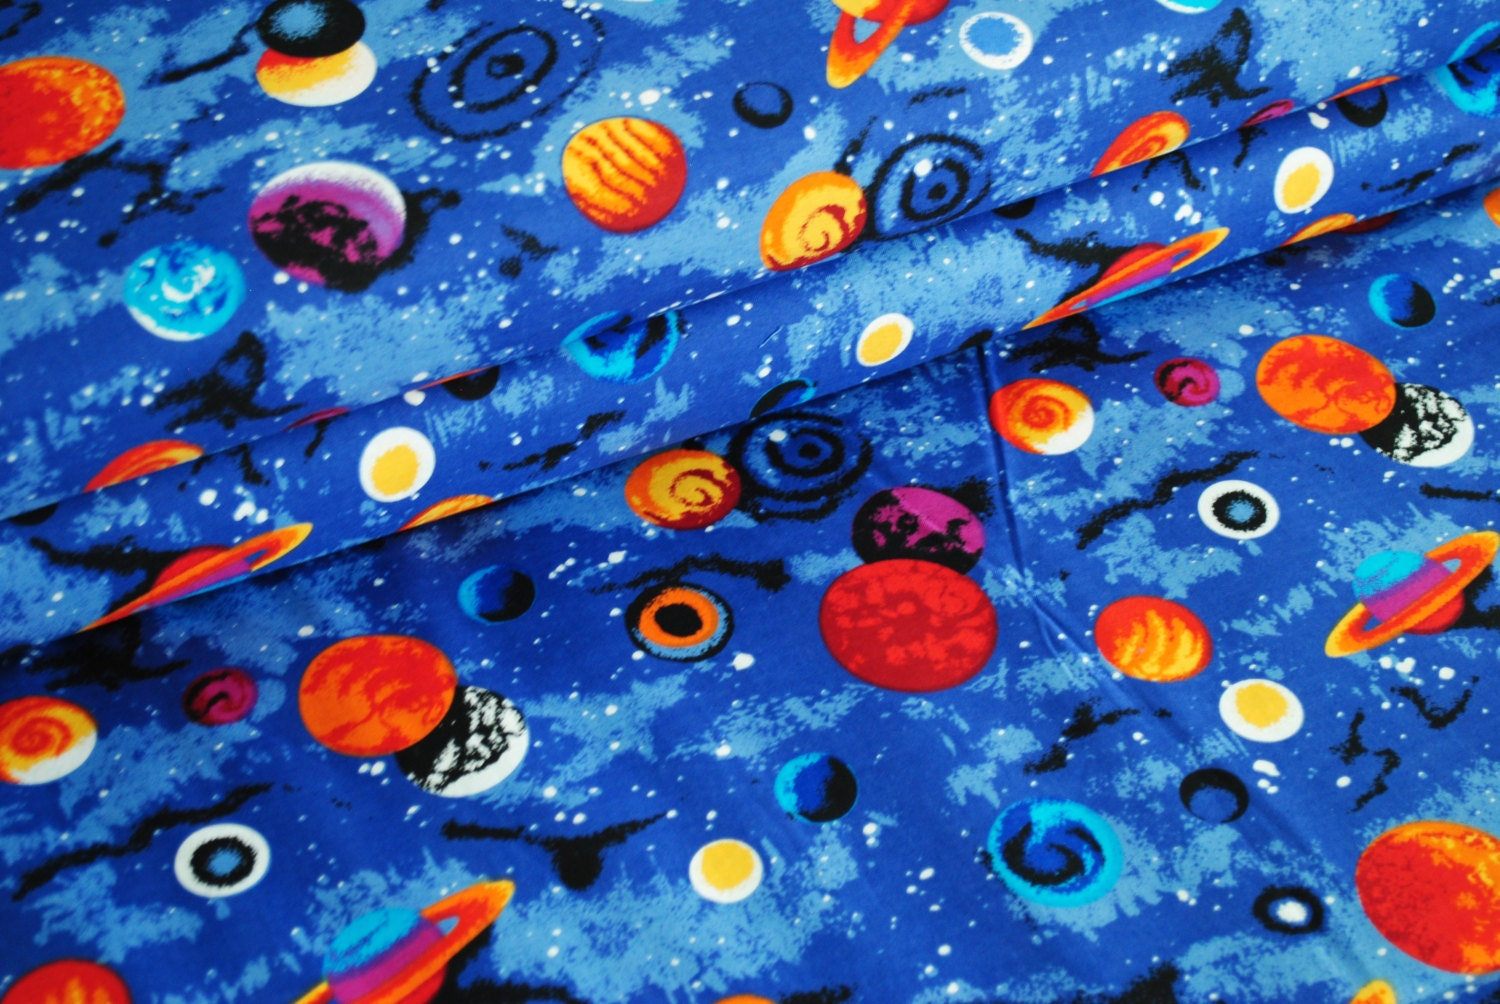 Universe and planets cotton woven fabric for Outer space fabric by the yard